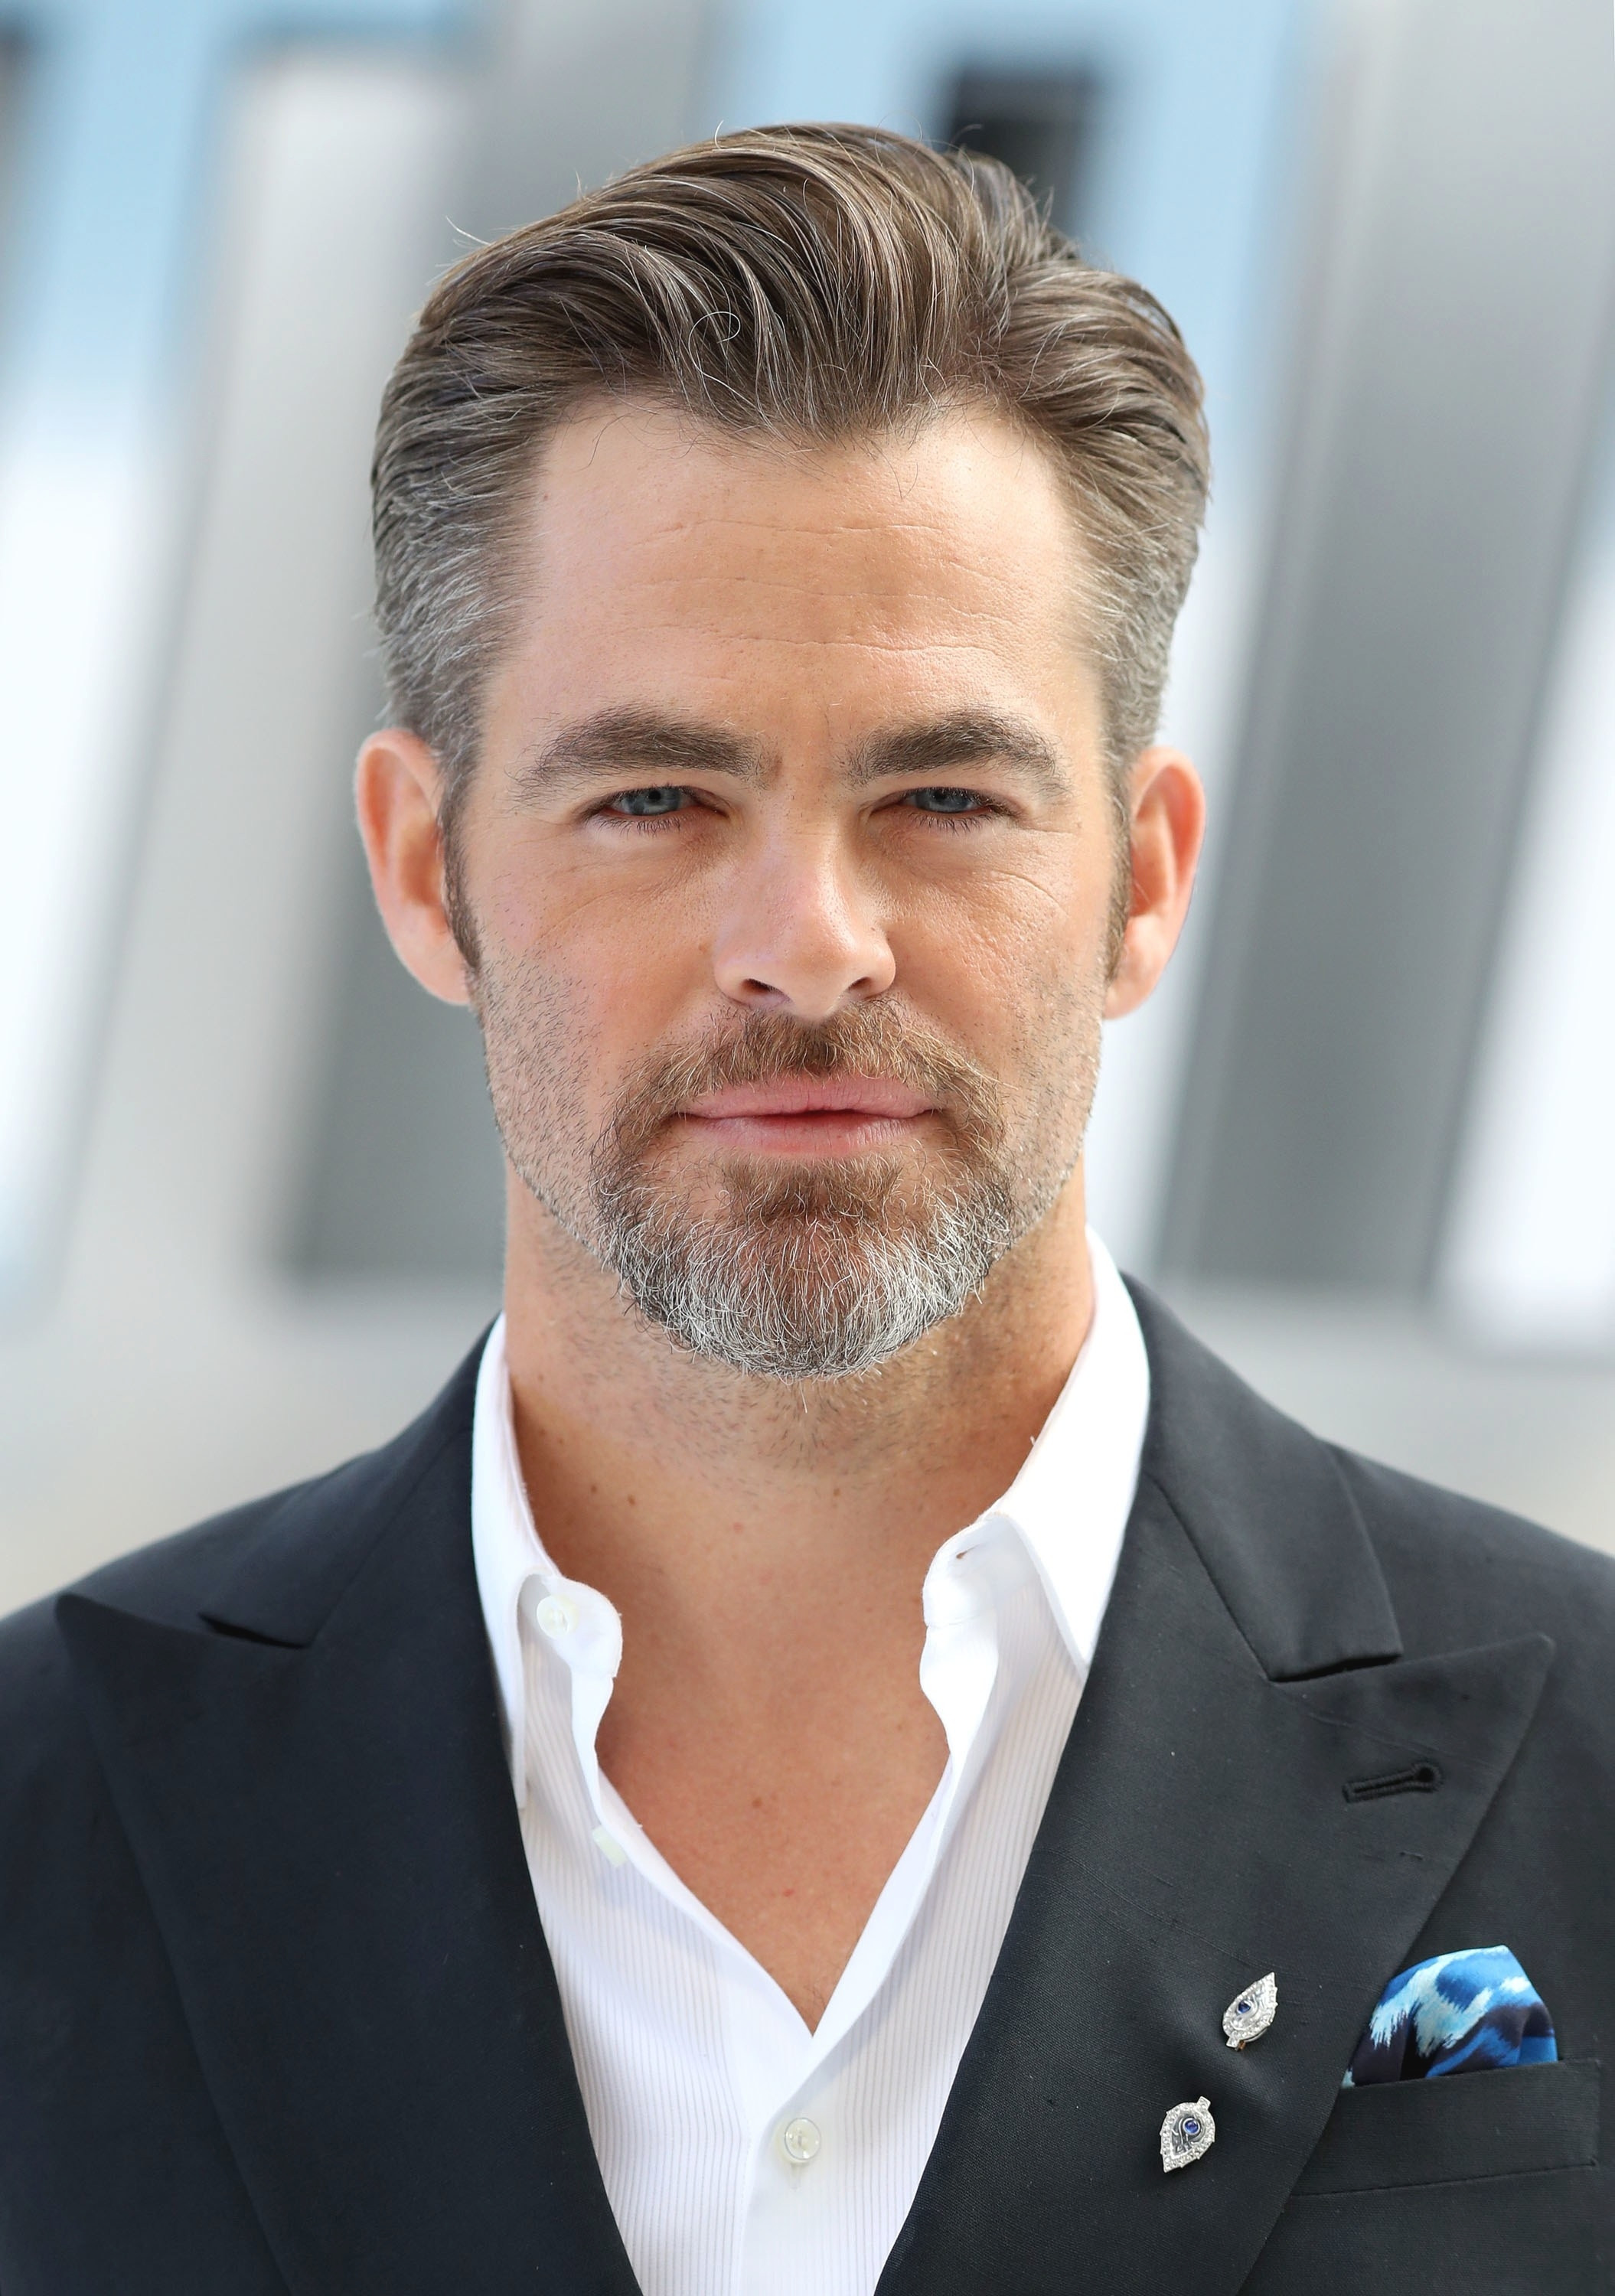 Best ideas about Celebrity Haircuts Male . Save or Pin Male Celebrity Hairstyles Now.